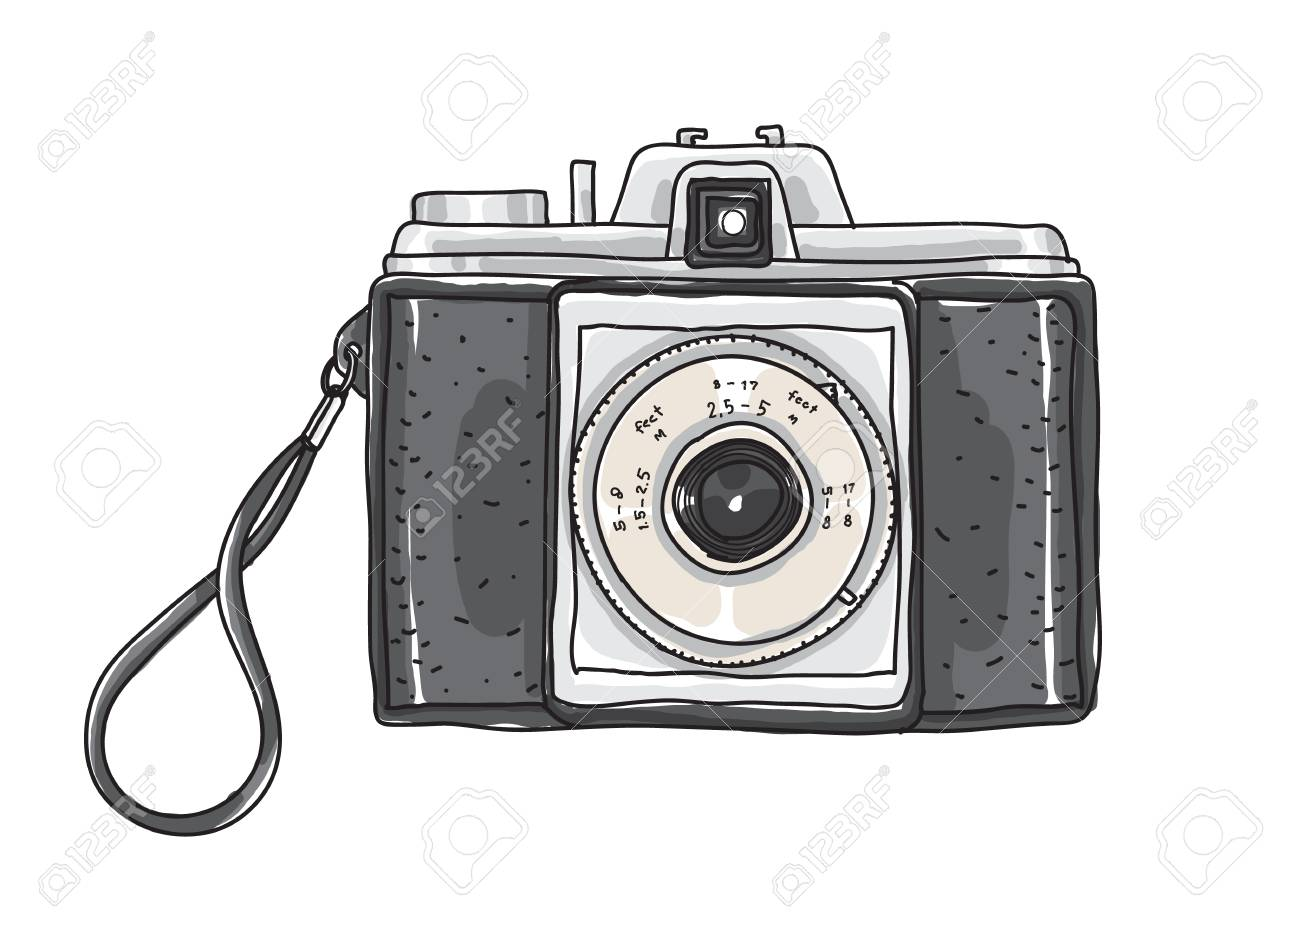 Camera Vintage Vector Png : Vintage camera logo vector: vintage 35mm film camera retro style